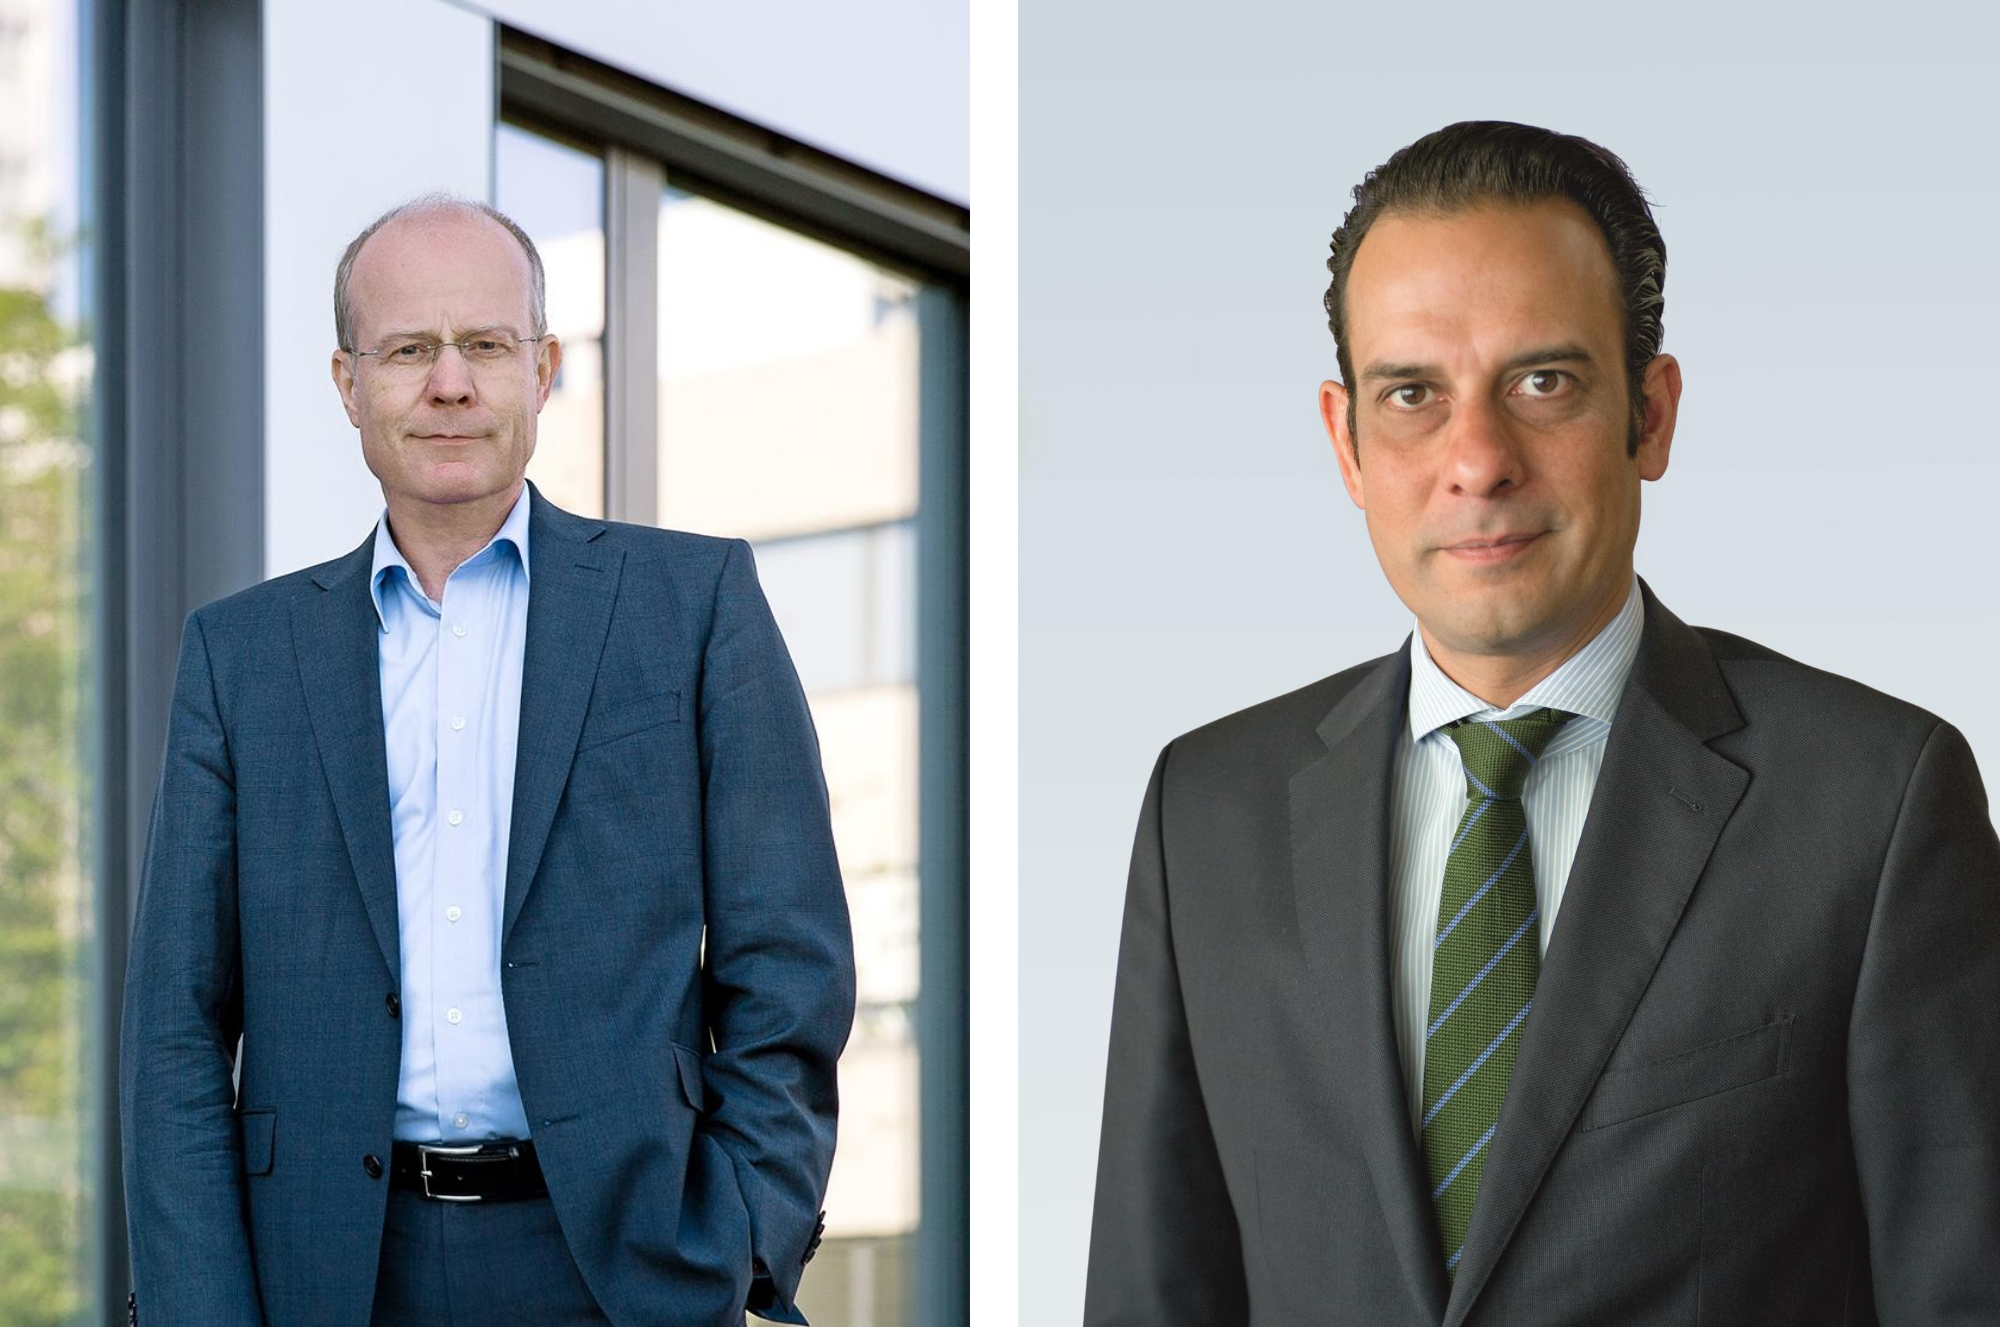 Top management newly formed: Samiron Mondal and Stefan Wissing to complement the management at Siempelkamp Holding